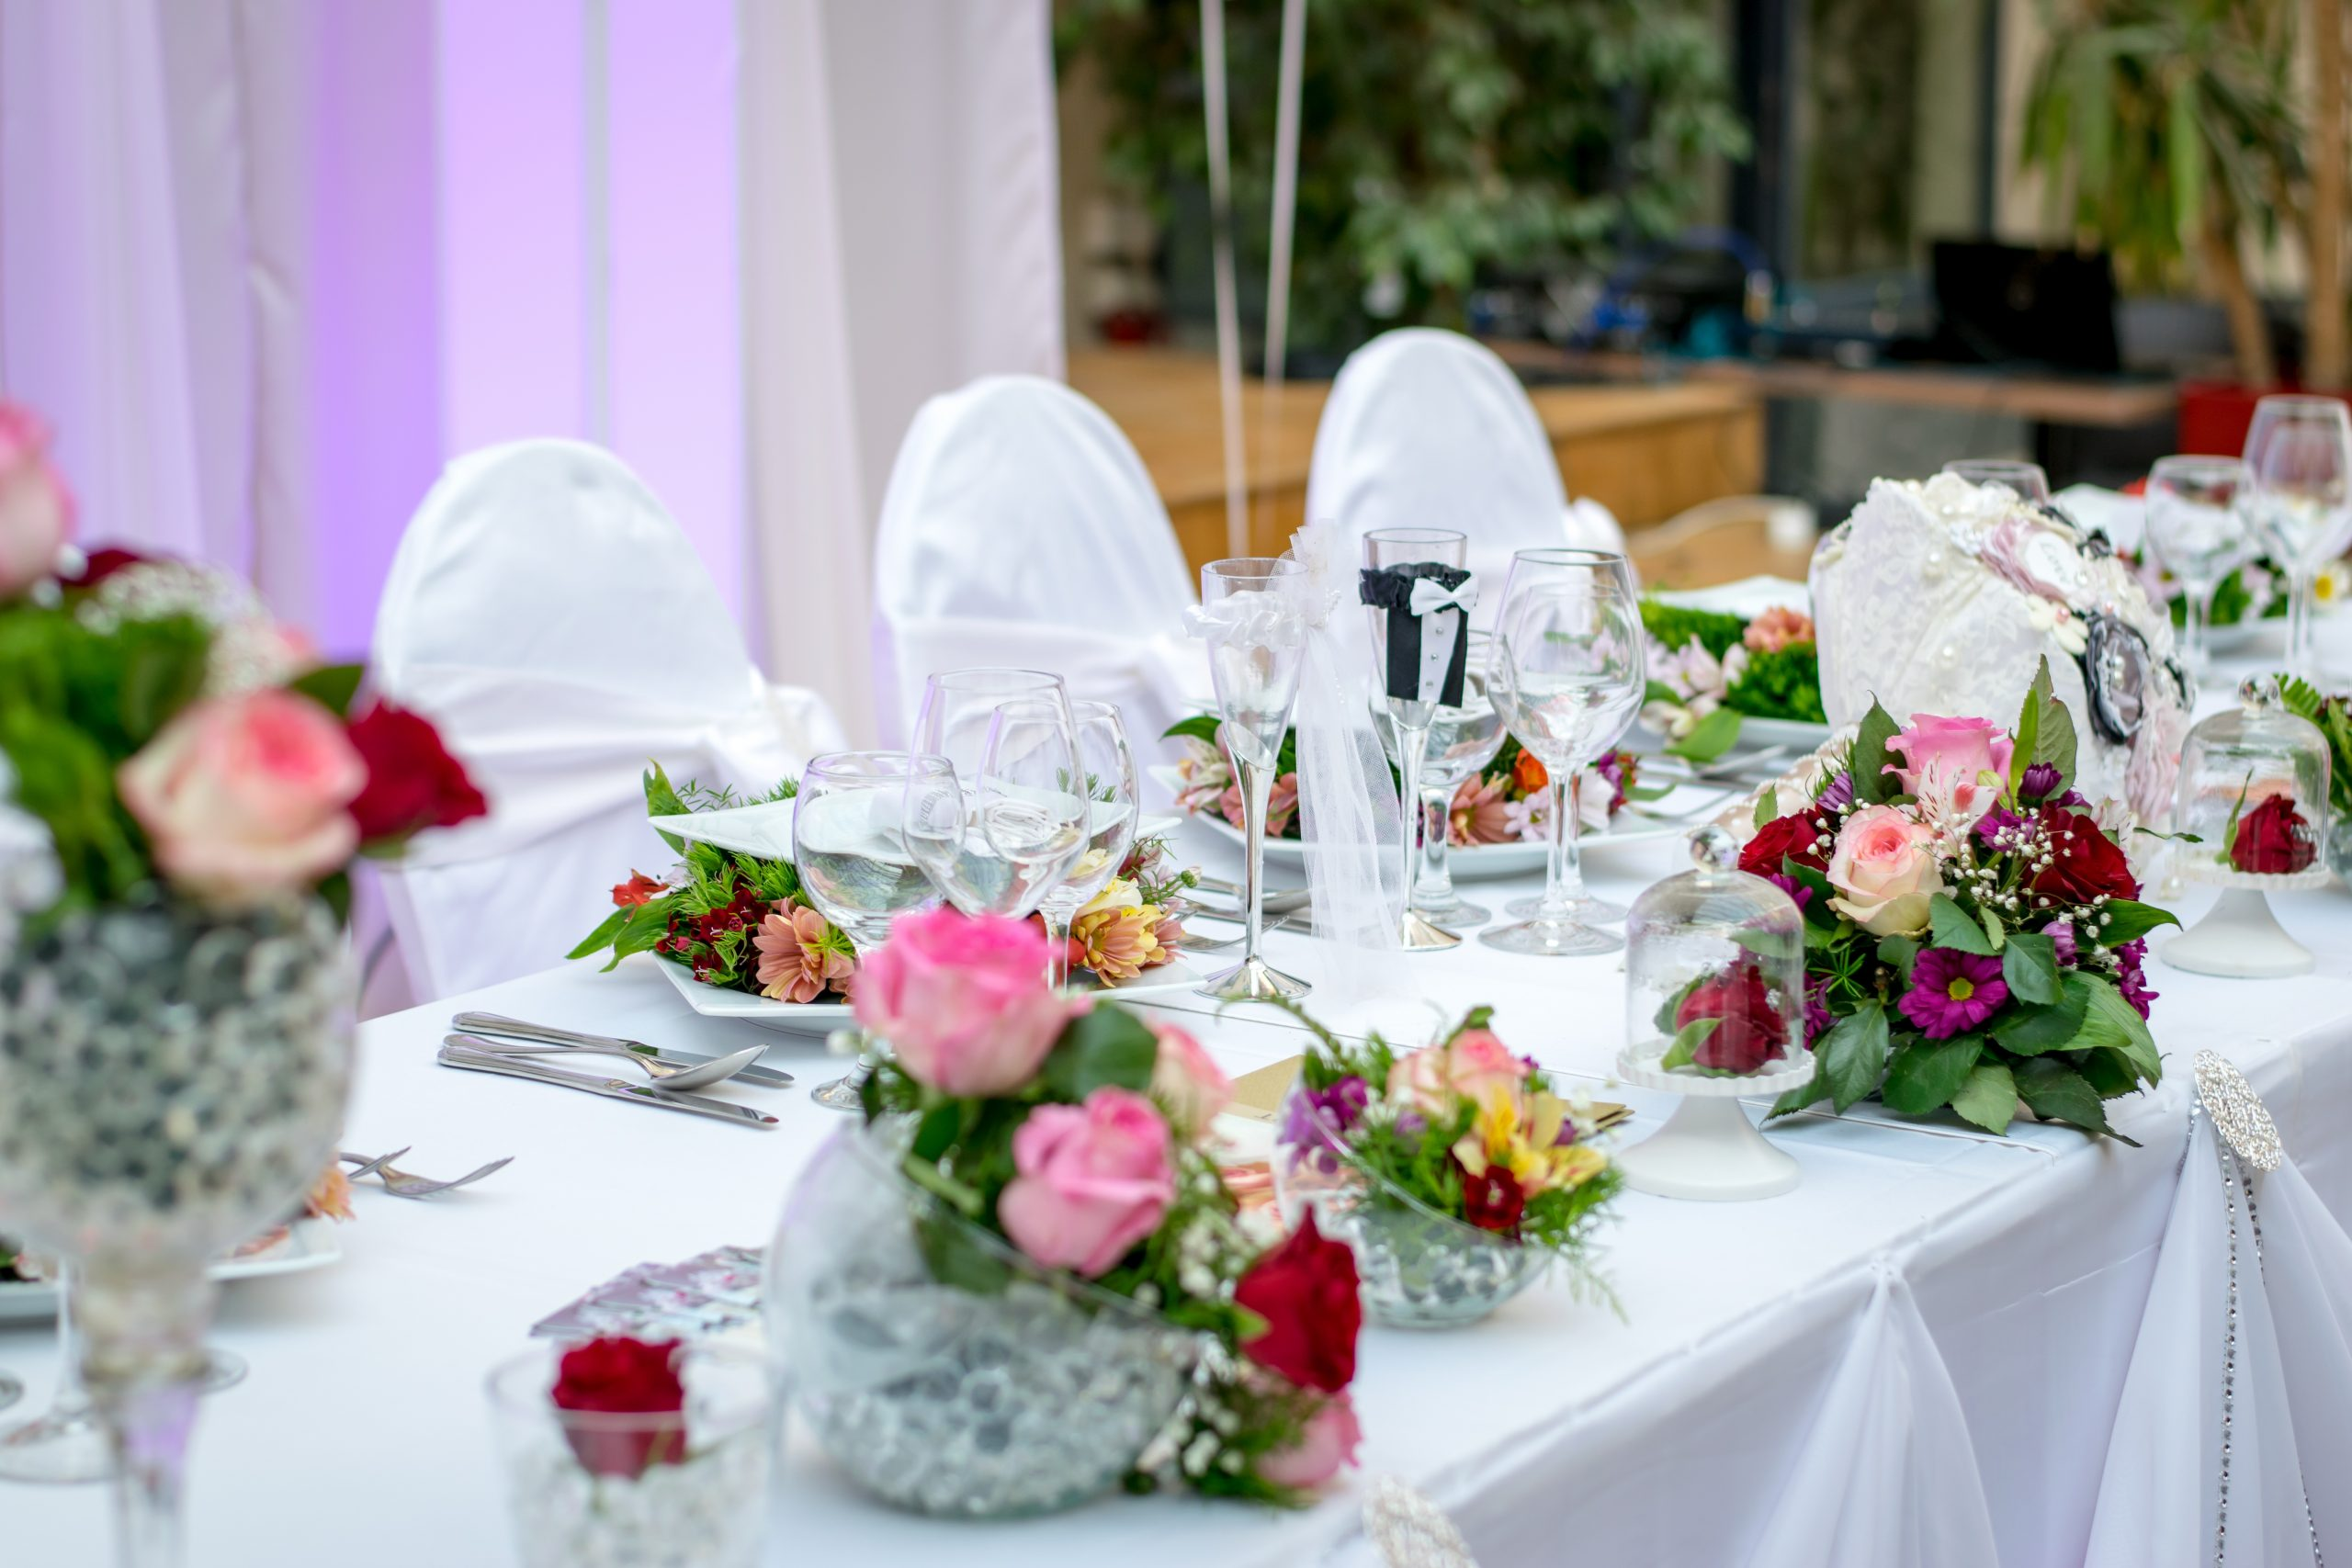 table-white-flower-petal-decoration-meal-1046813-pxhere.com